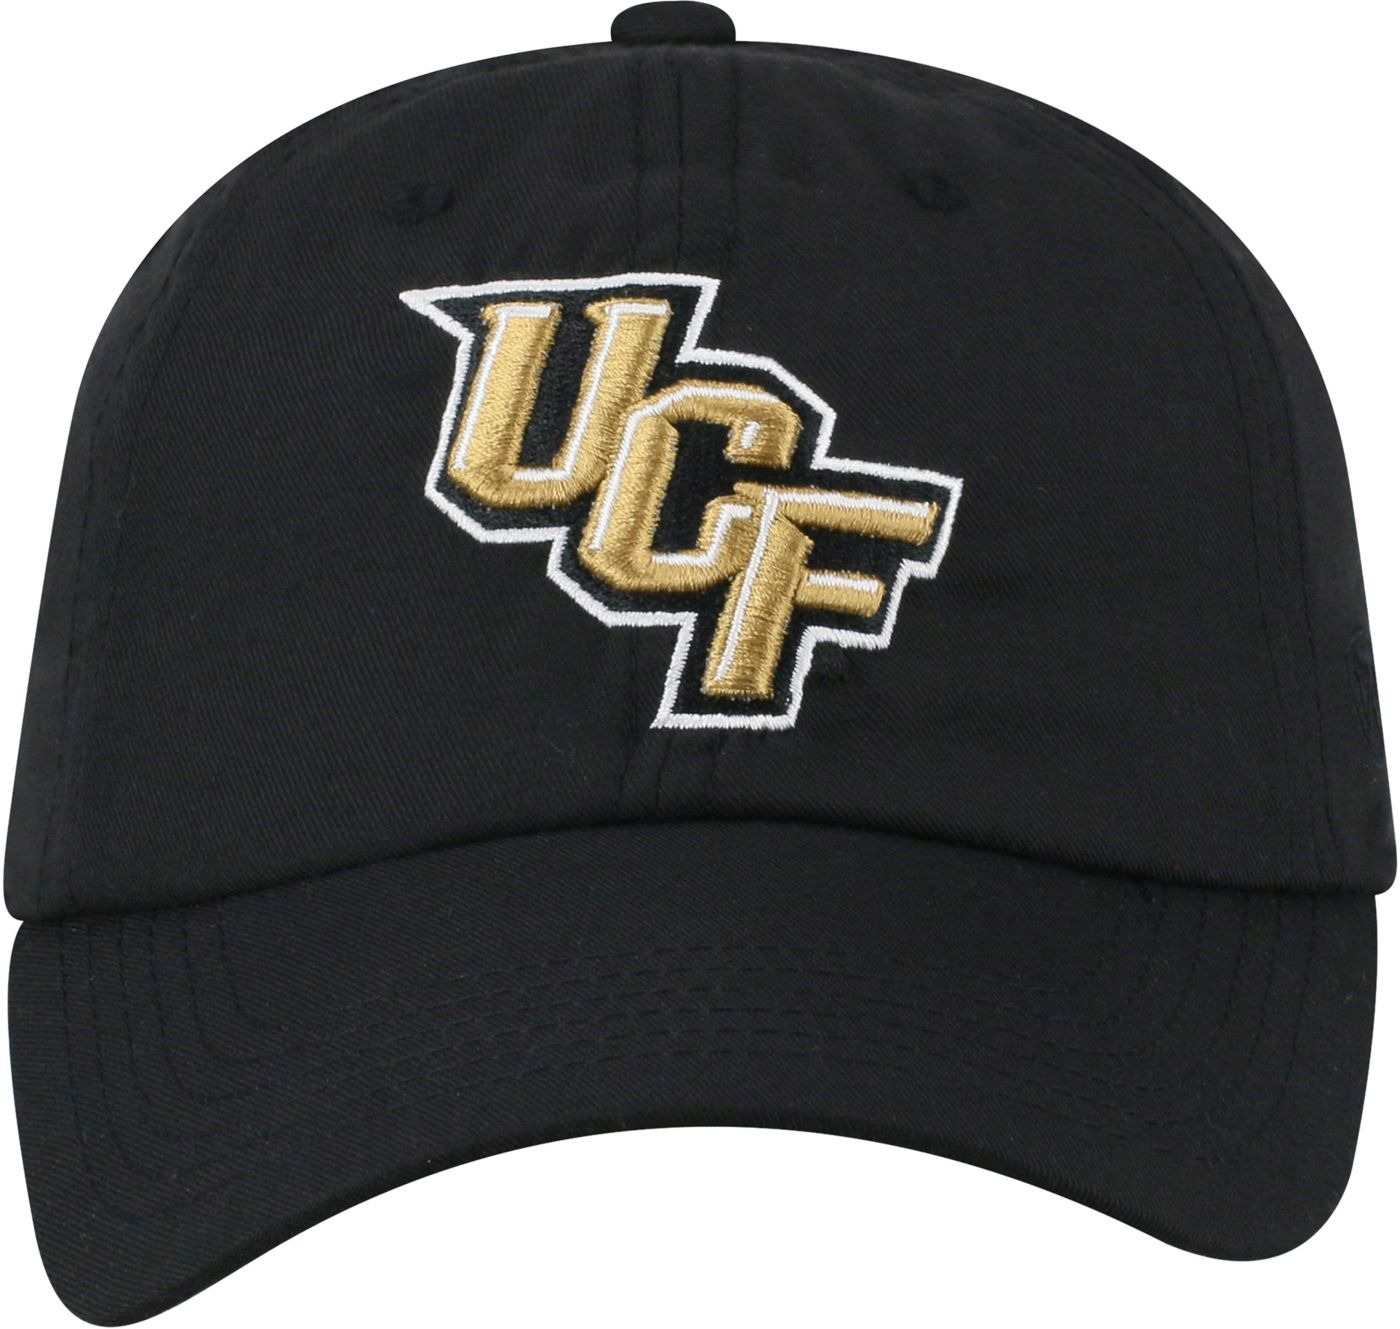 Top of the World Men's UCF Knights Staple Adjustable Black Hat